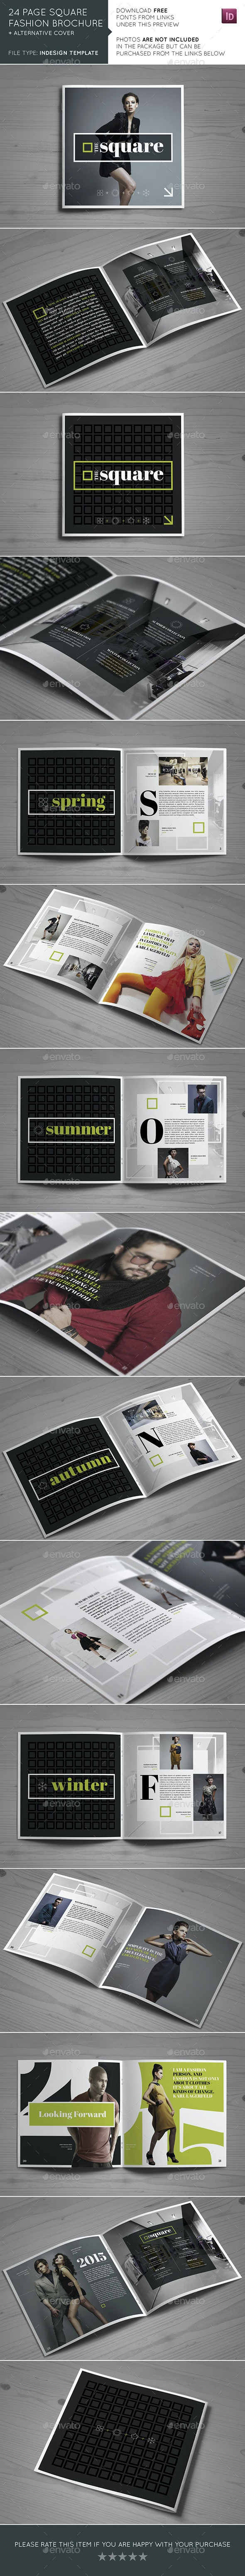 24 Page Square Fashion Brochure - Brochures Print Templates